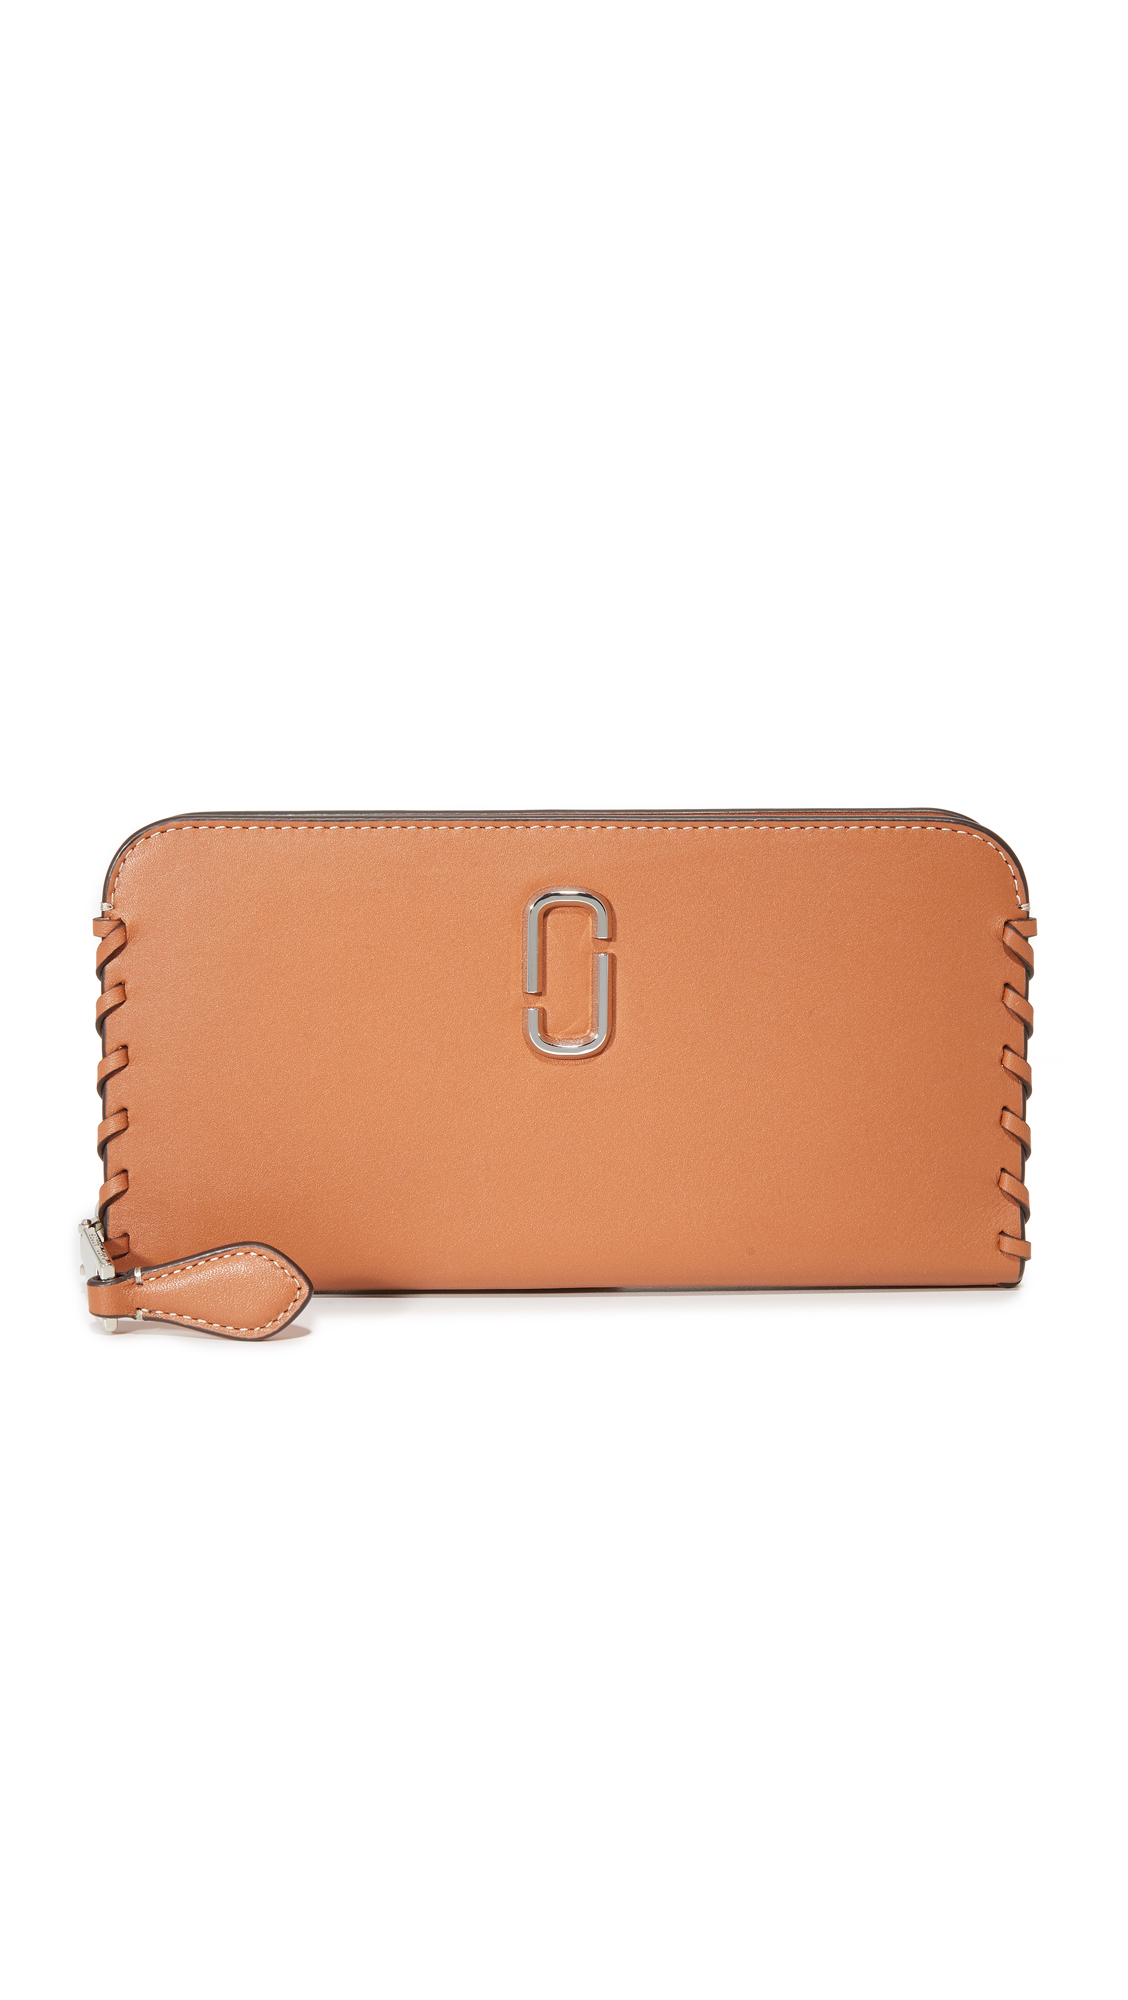 marc jacobs female marc jacobs noho continental wallet caramel cafe